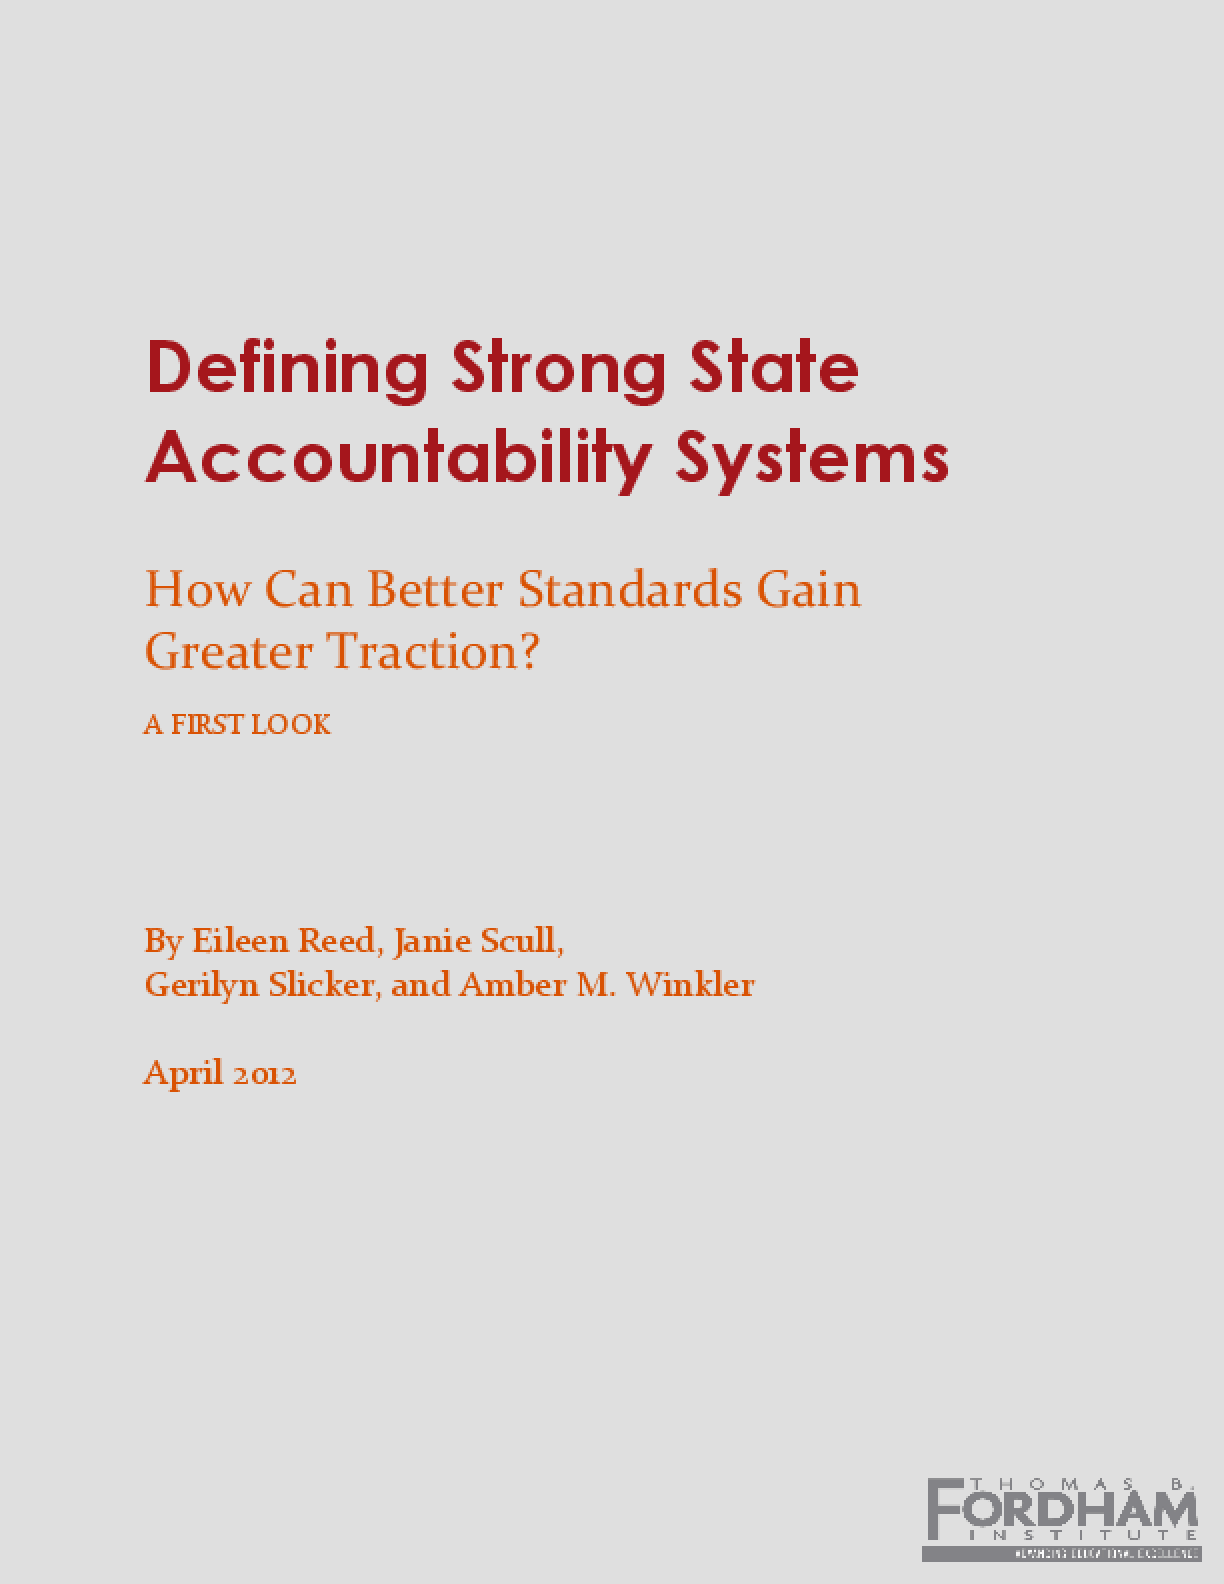 Defining Strong State Accountability Systems: How Can Better Standards Gain Greater Traction?